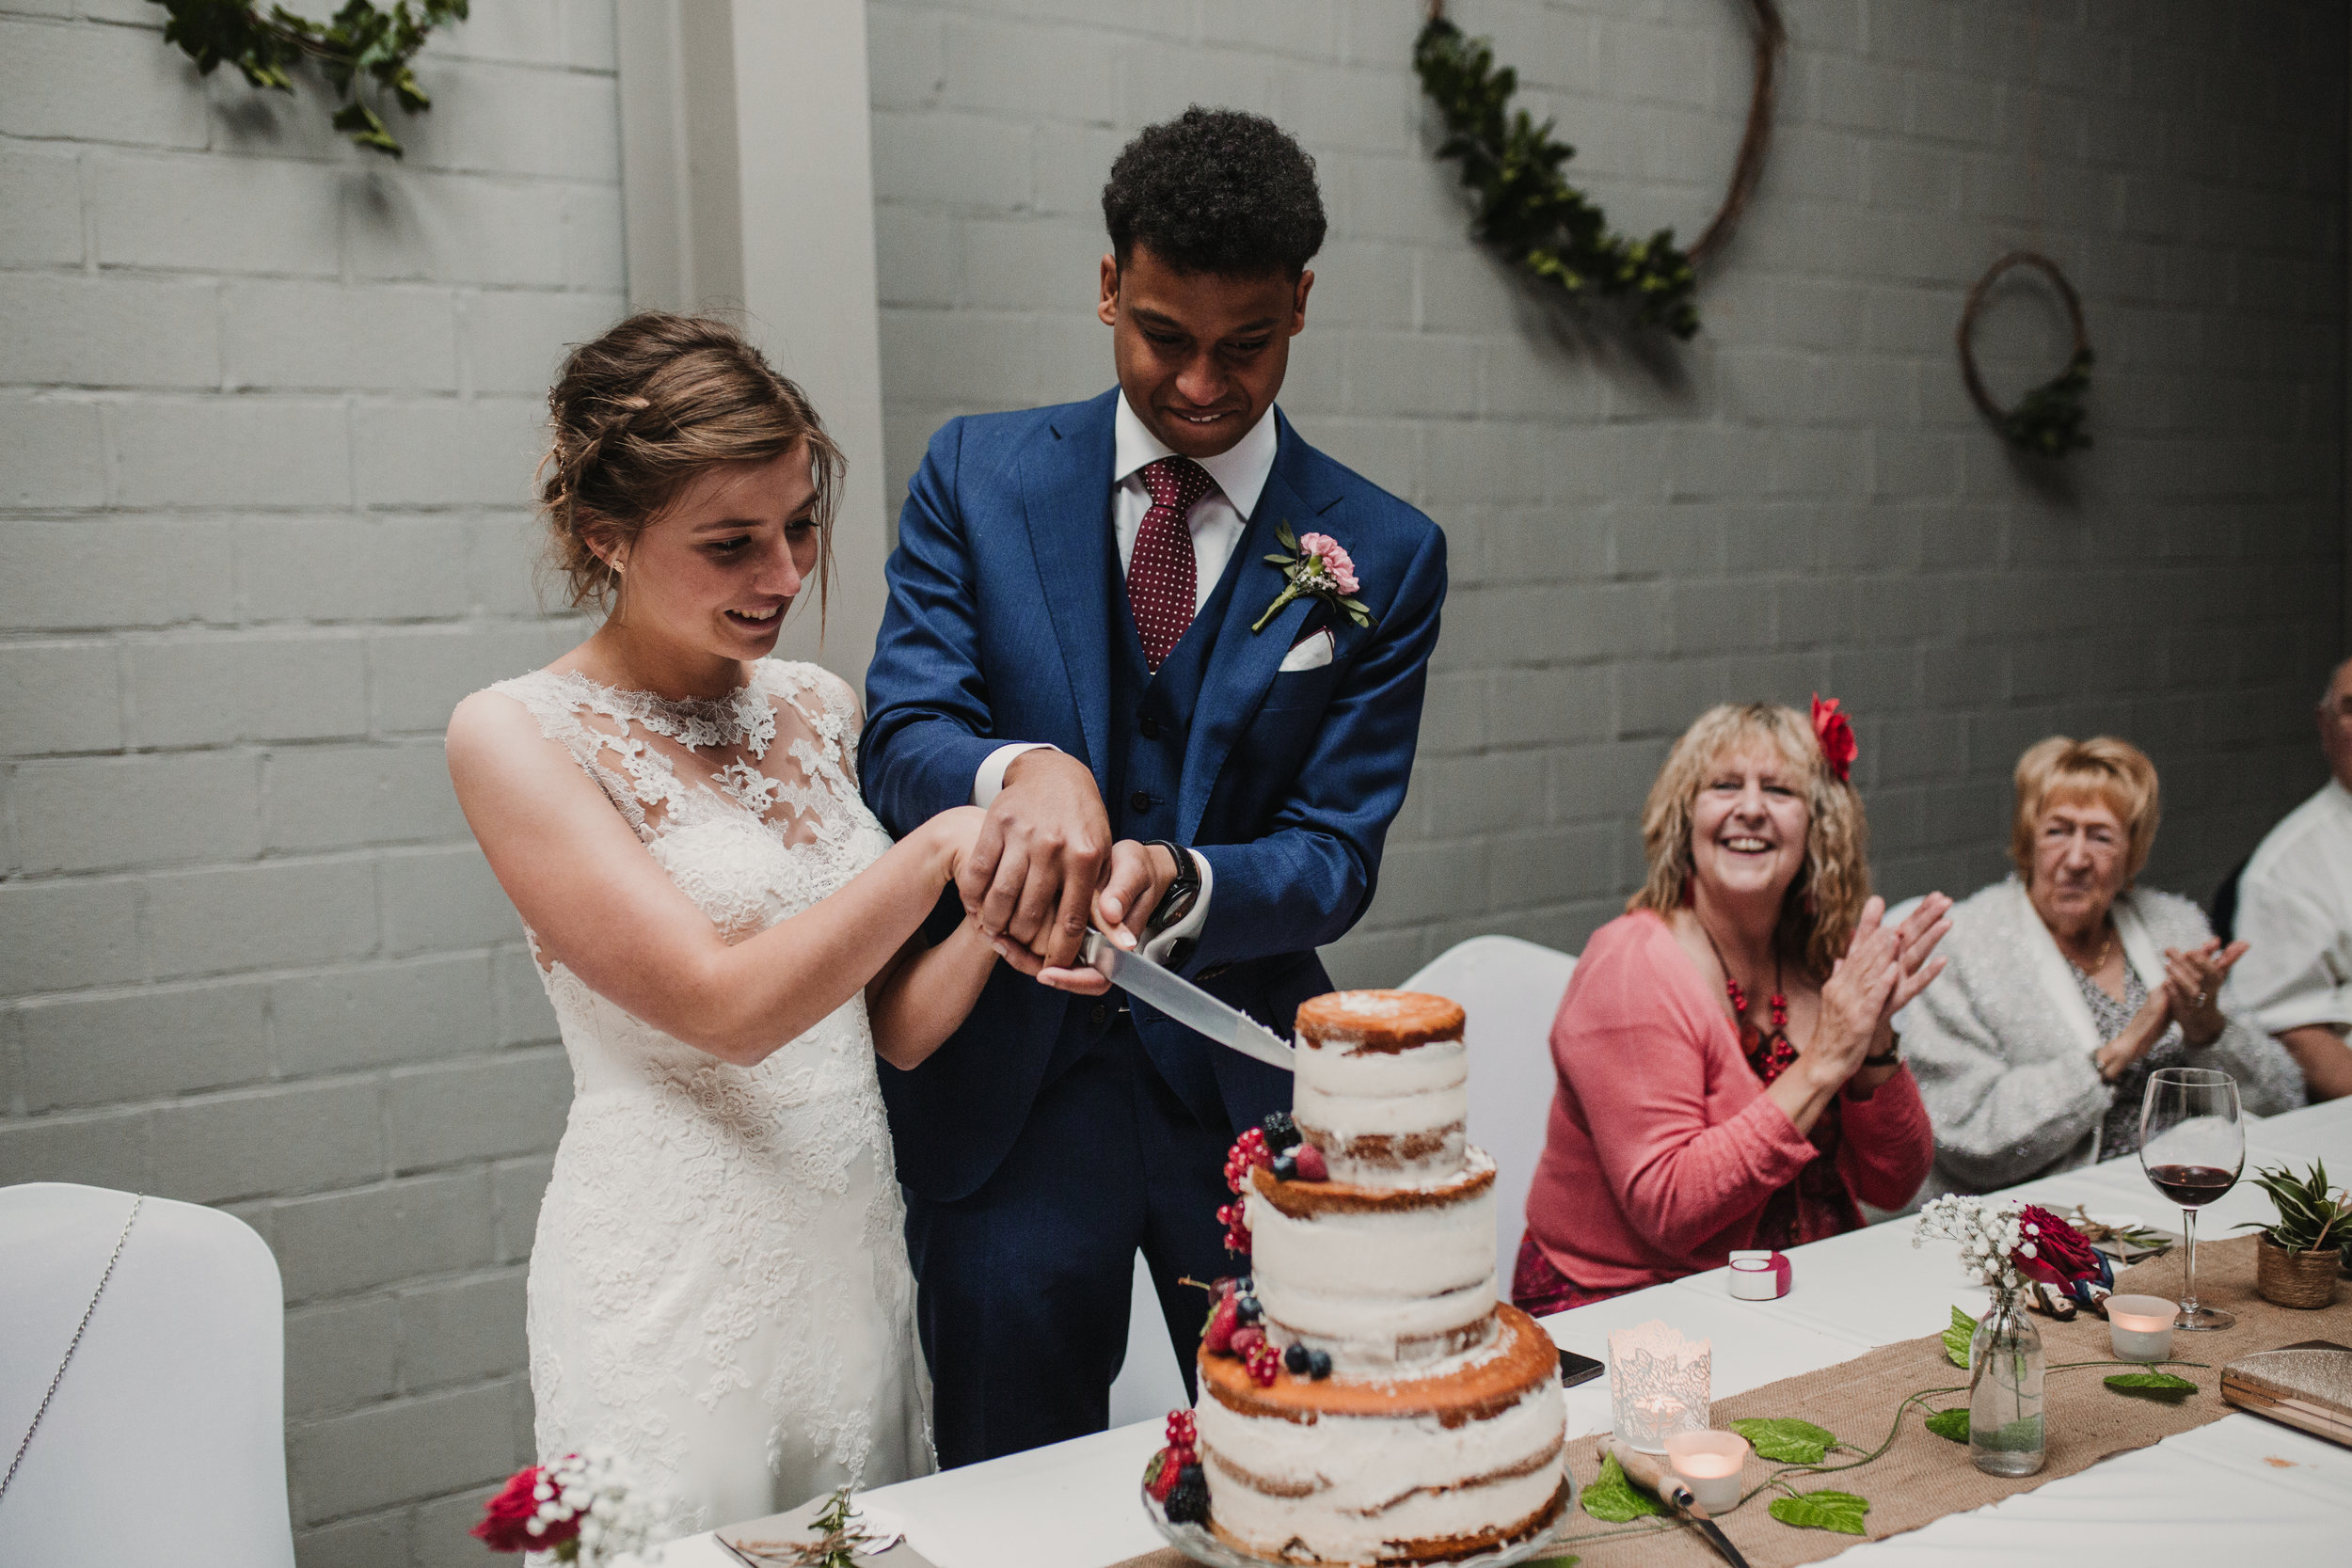 """- David's sister lovingly created their wedding cake and a full dessert spread for their guests. Their reception was not complete without a flash mob, dancing exactly like Kevin Bacon to """"Footloose,"""" and belting out as many ballads as they could."""